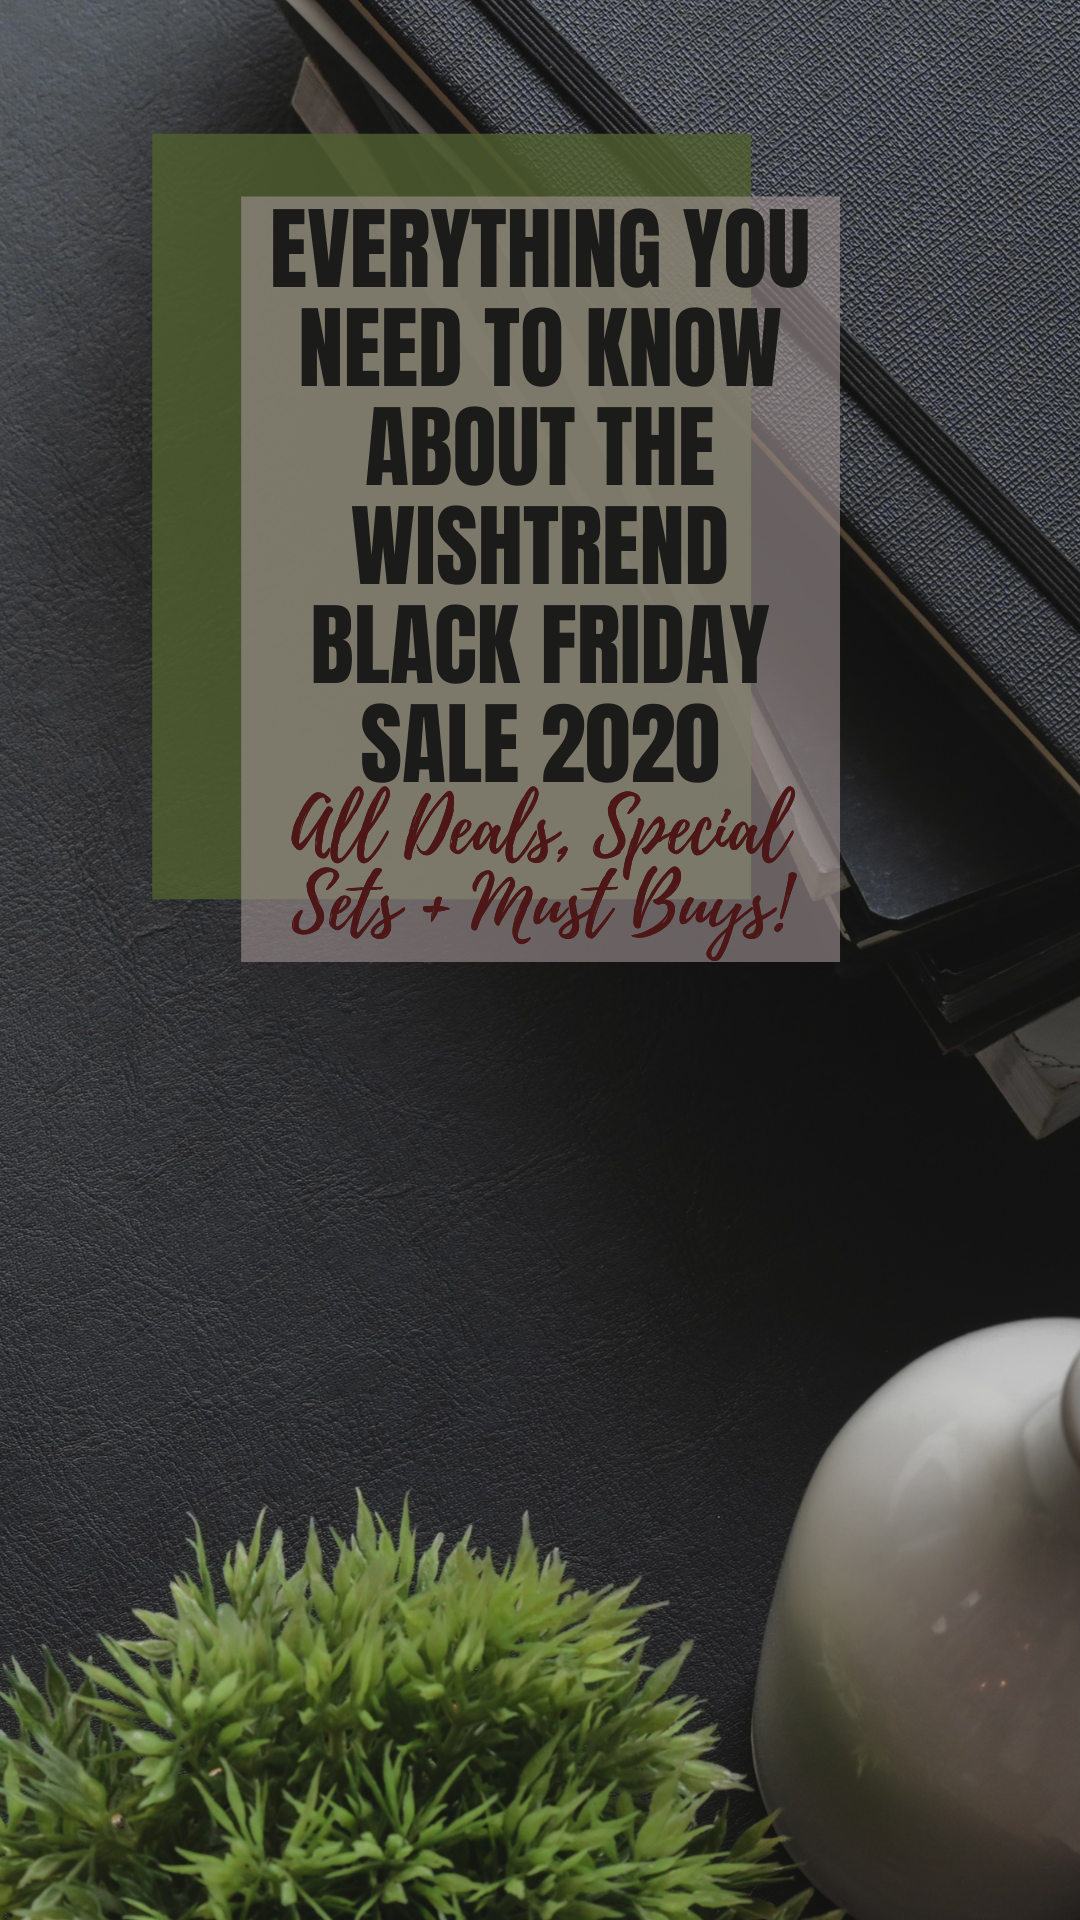 Everything you need to know about the Wishtrend Black Friday sale 2020